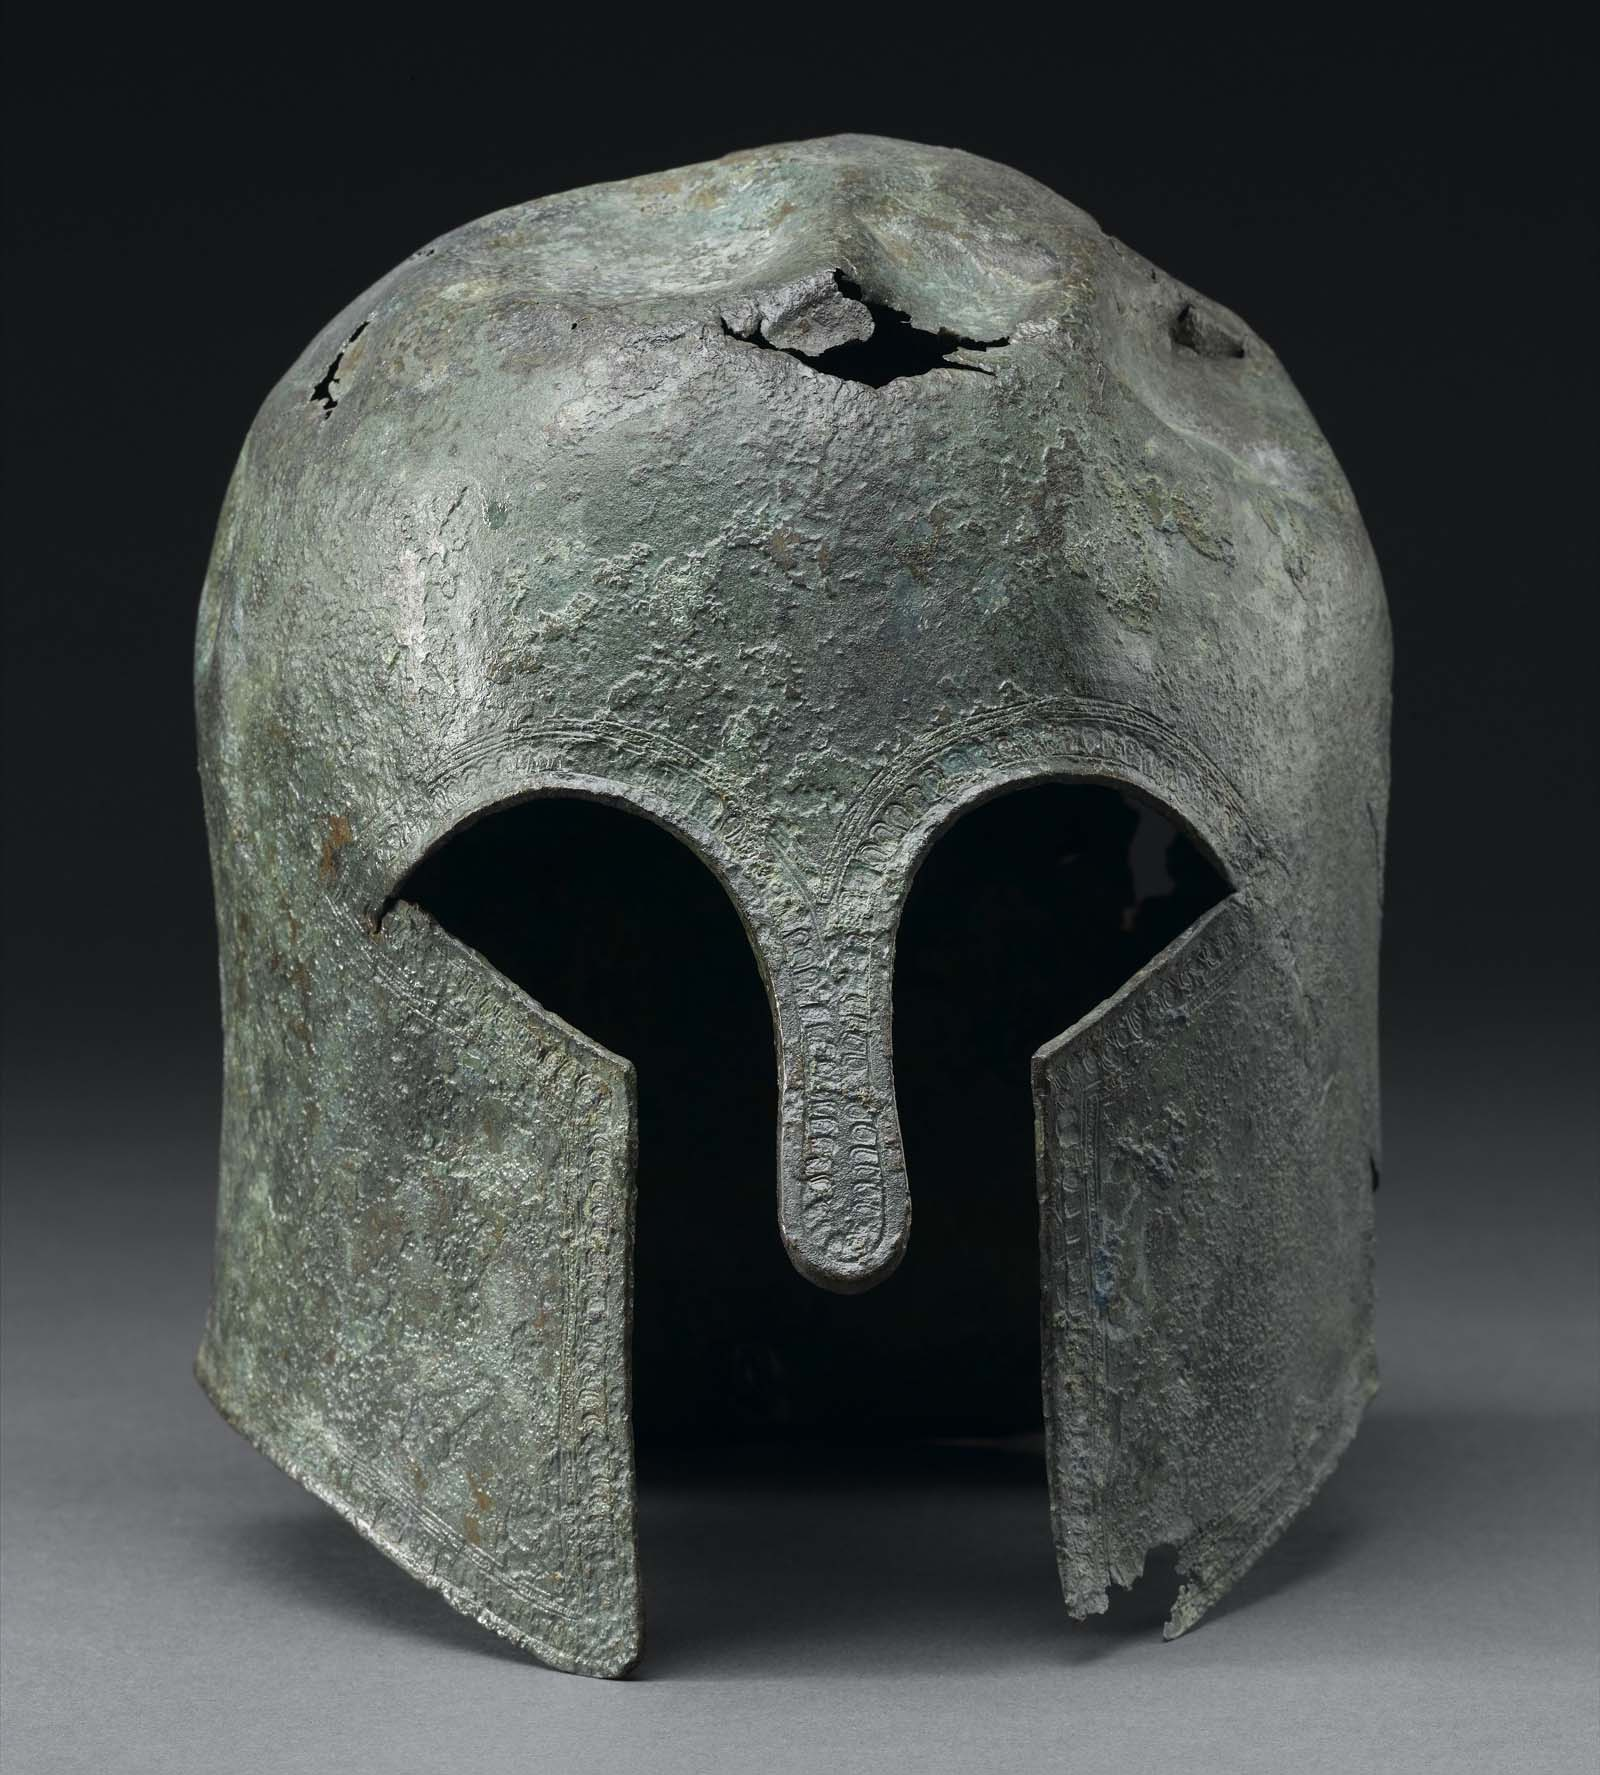 photo of a Greek style helmet with nose and cheek guards